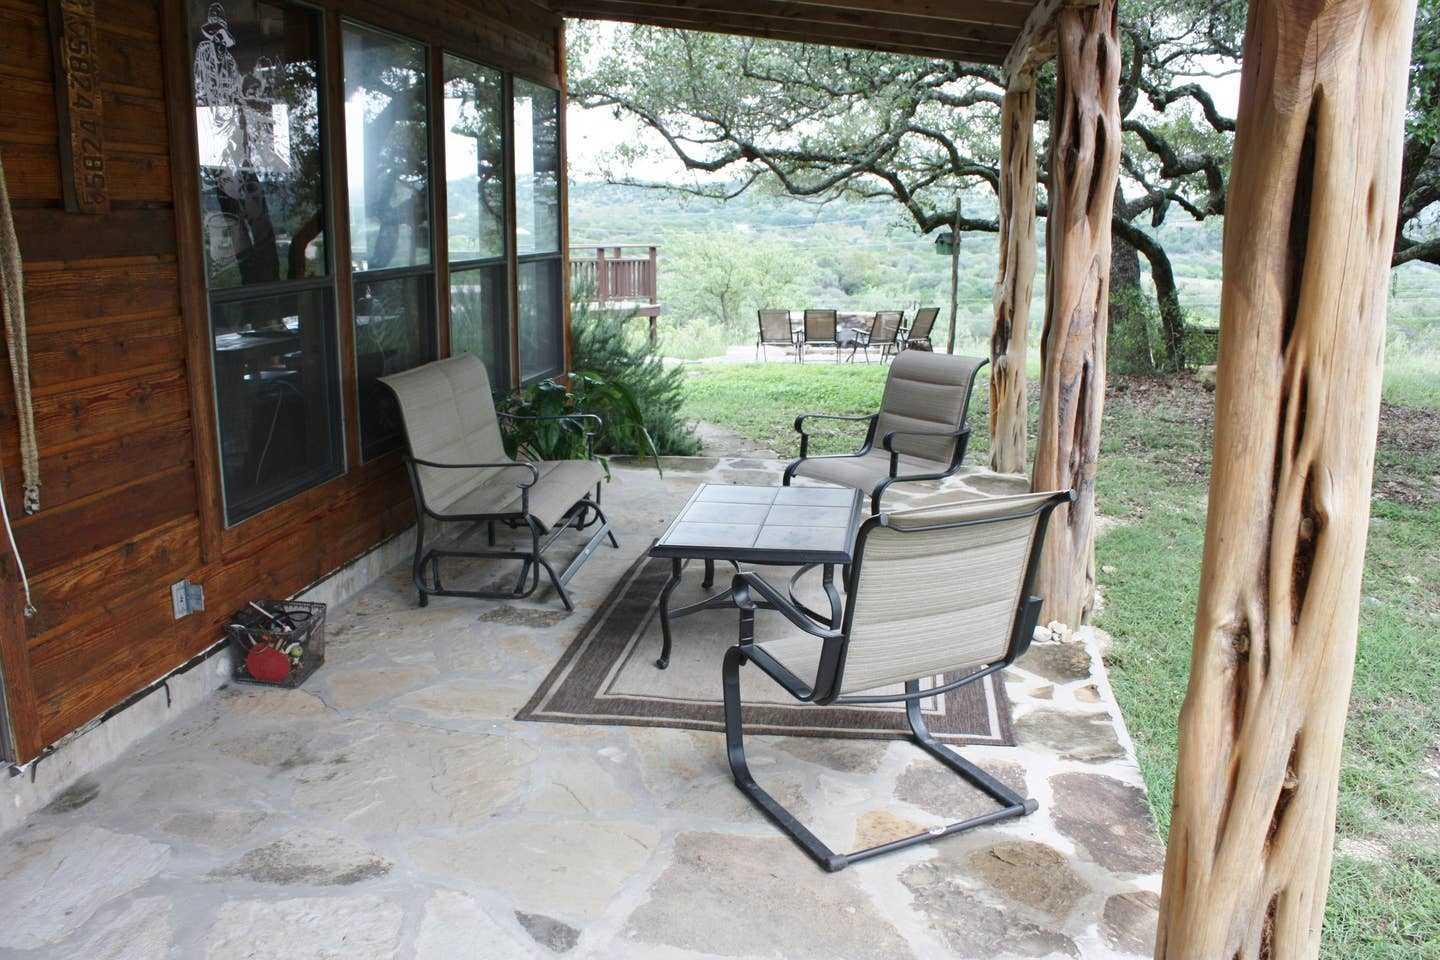 Comfy outdoor furniture makes the shaded patio a great place for conversation and wildlife watching.